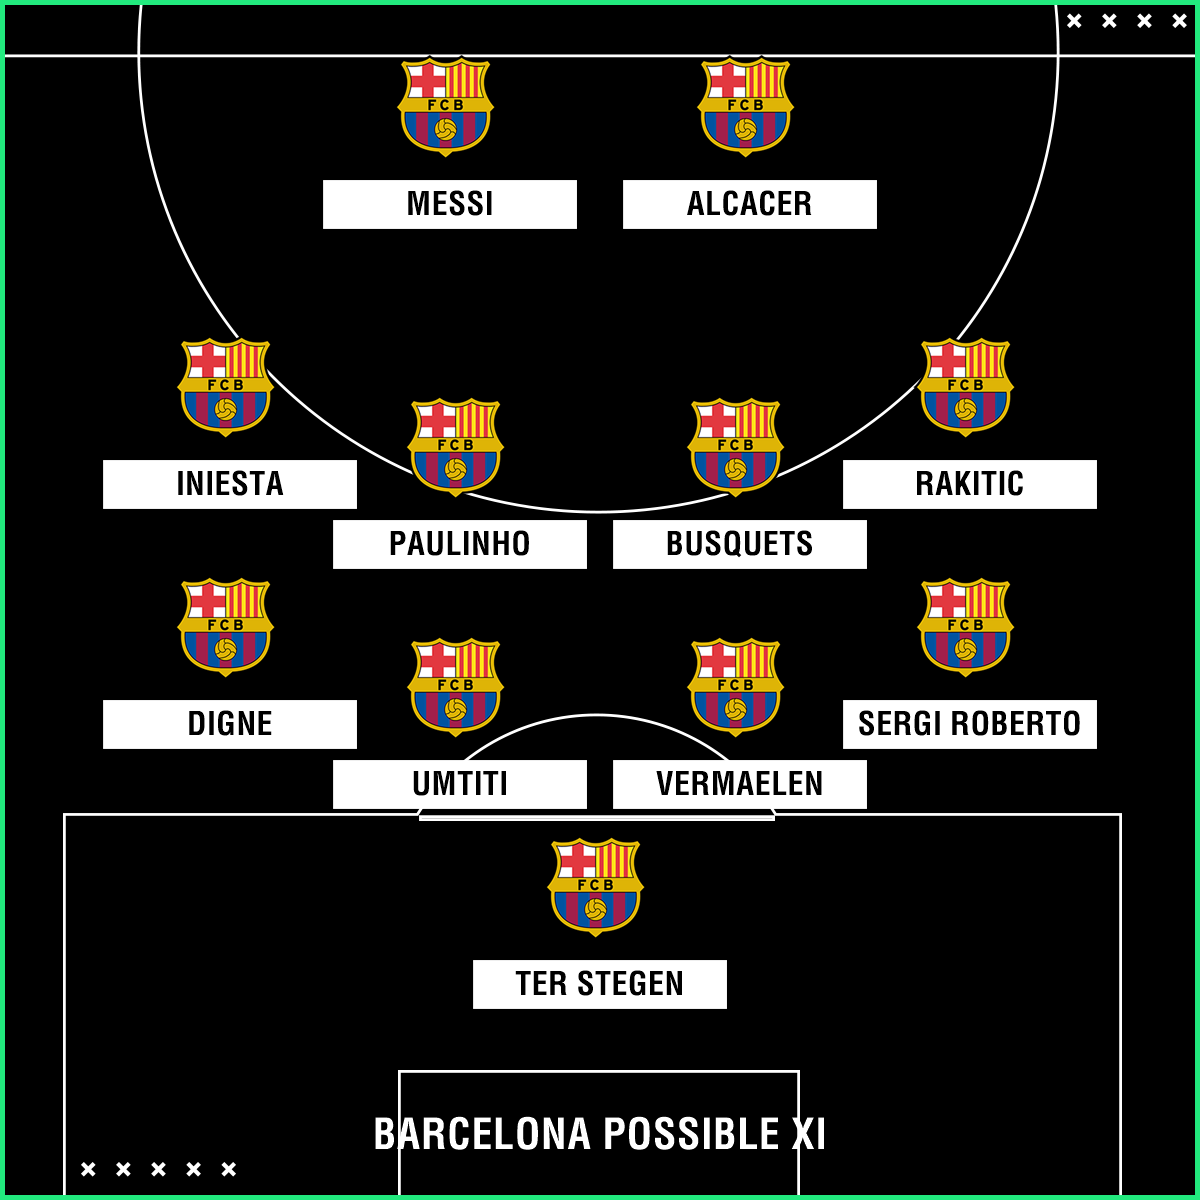 Barcelona possible Las Palmas